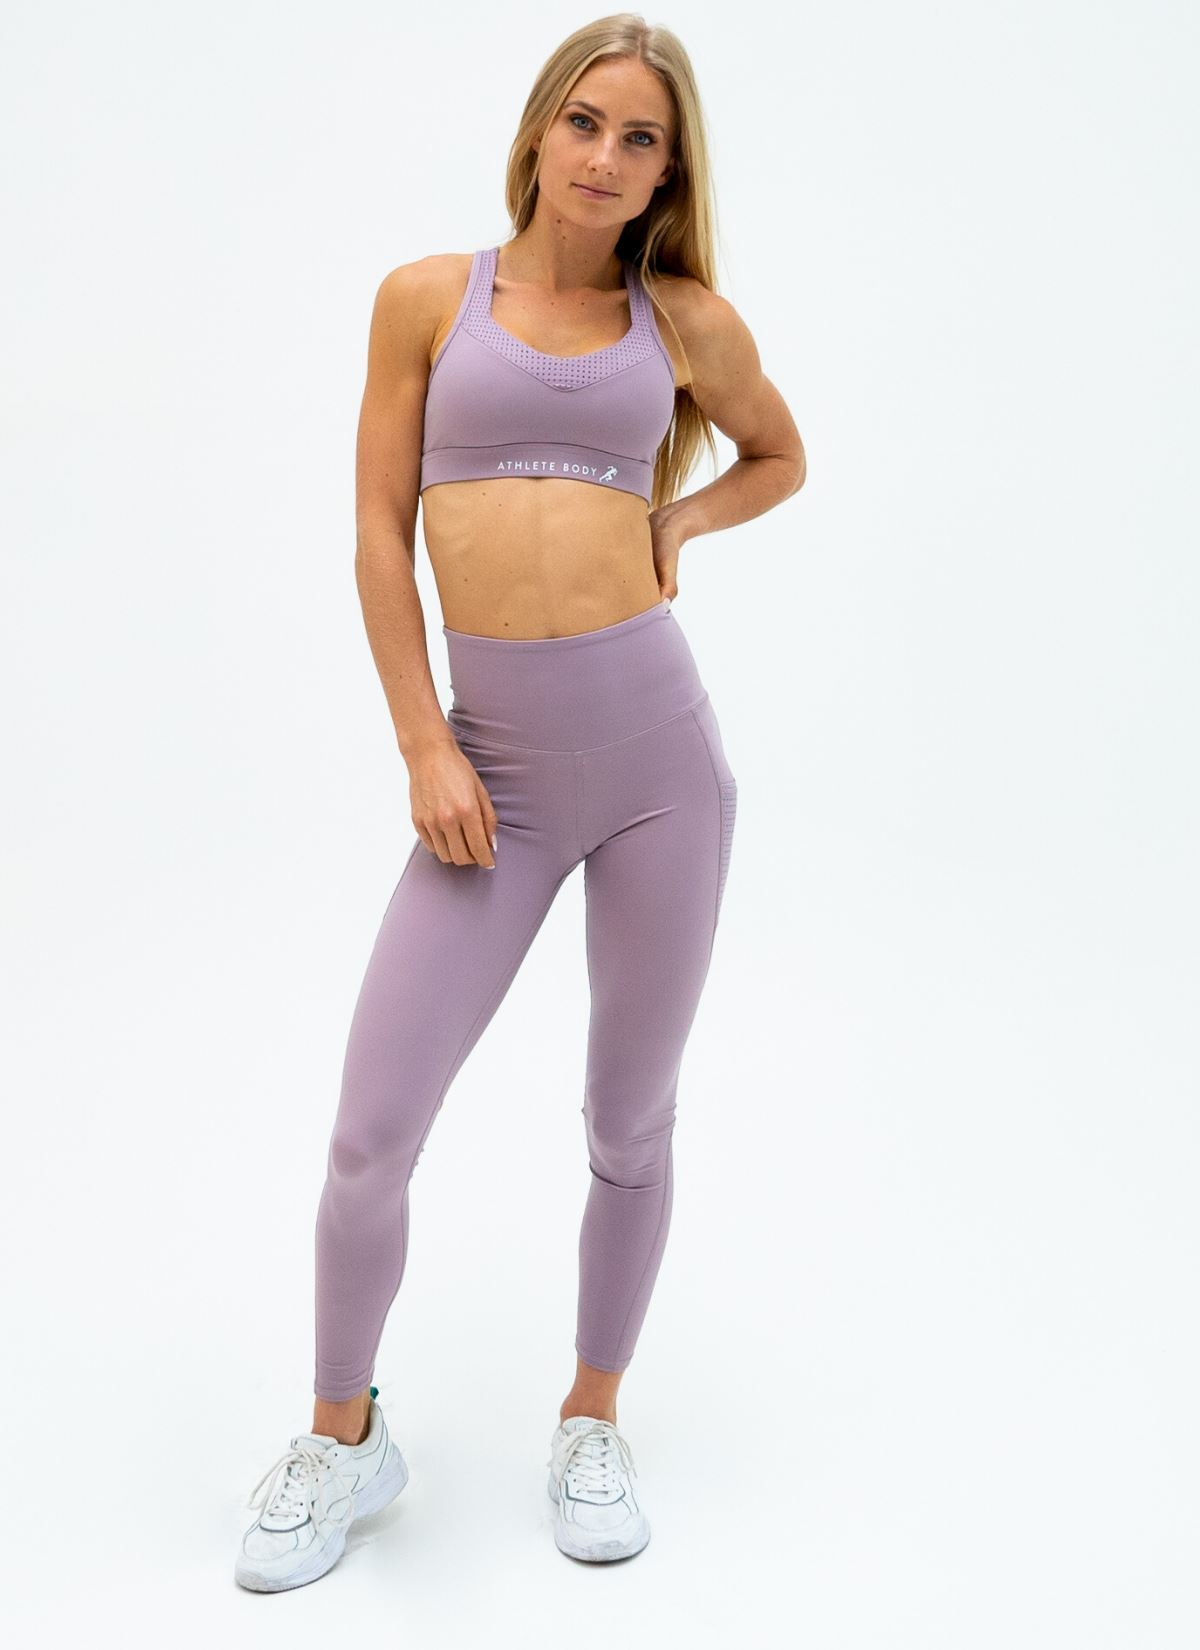 Elevate Purple Yoga Set - Athlete Body